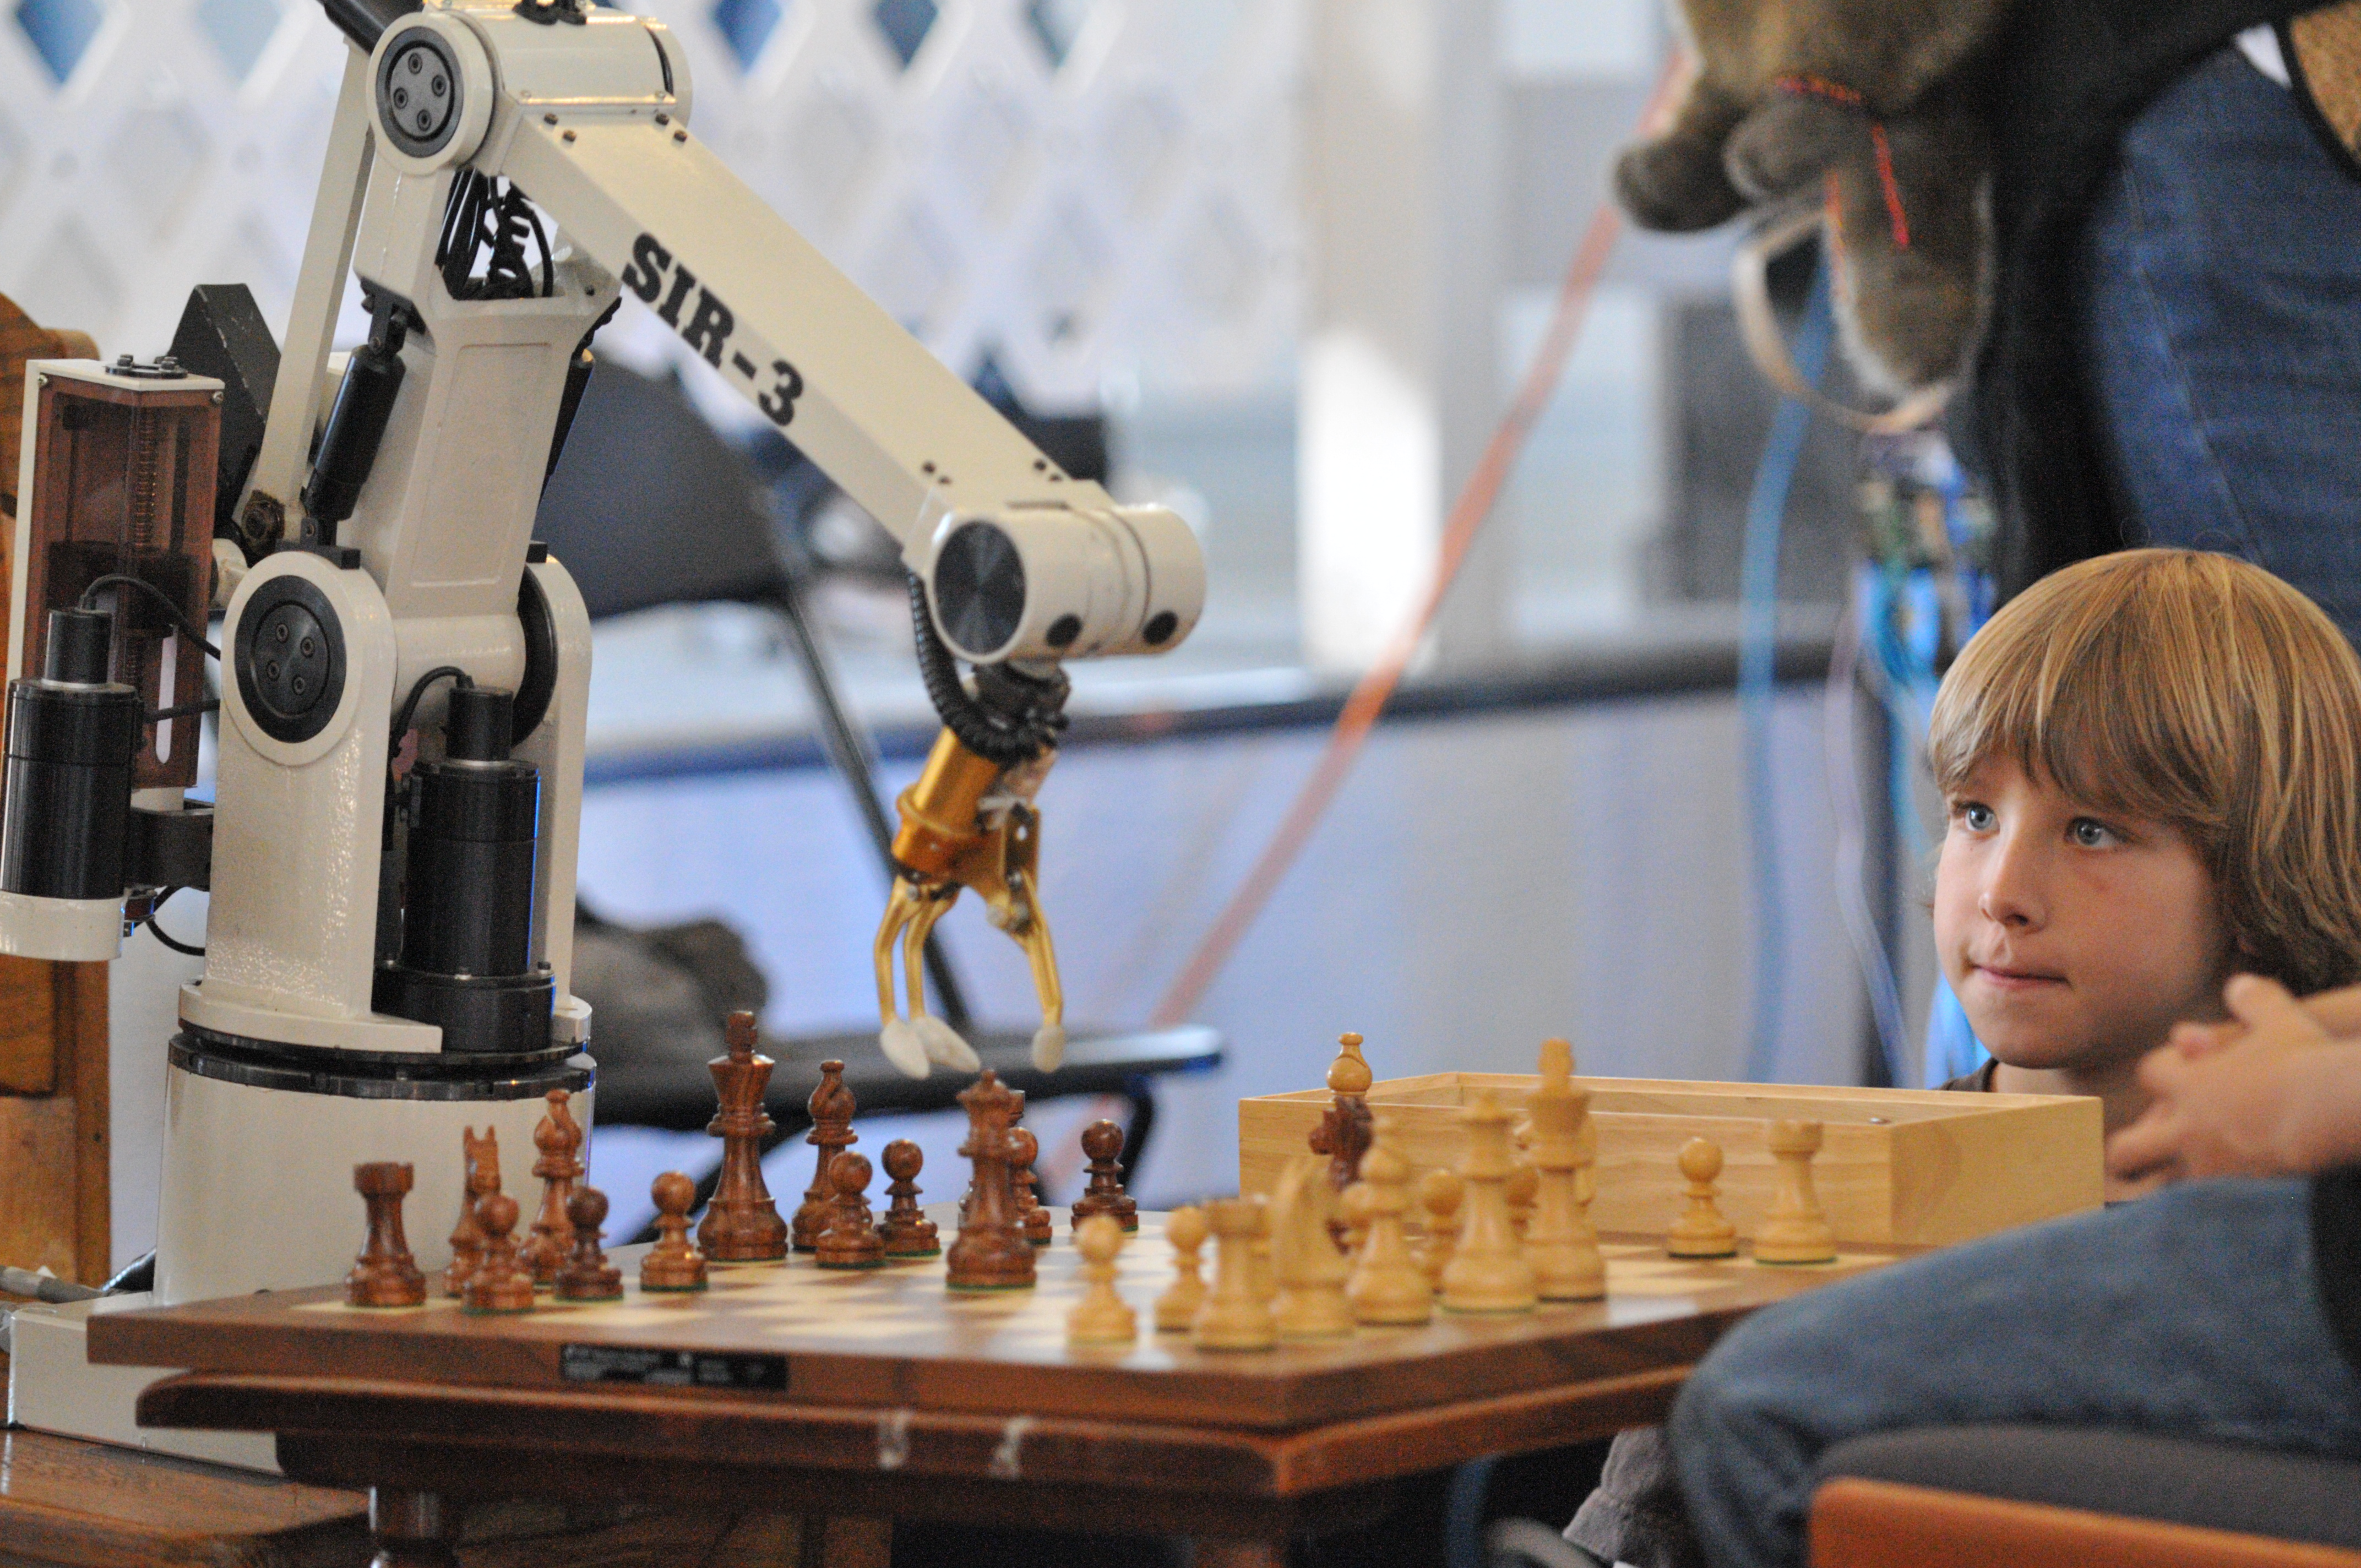 Chess Robot - Bing images